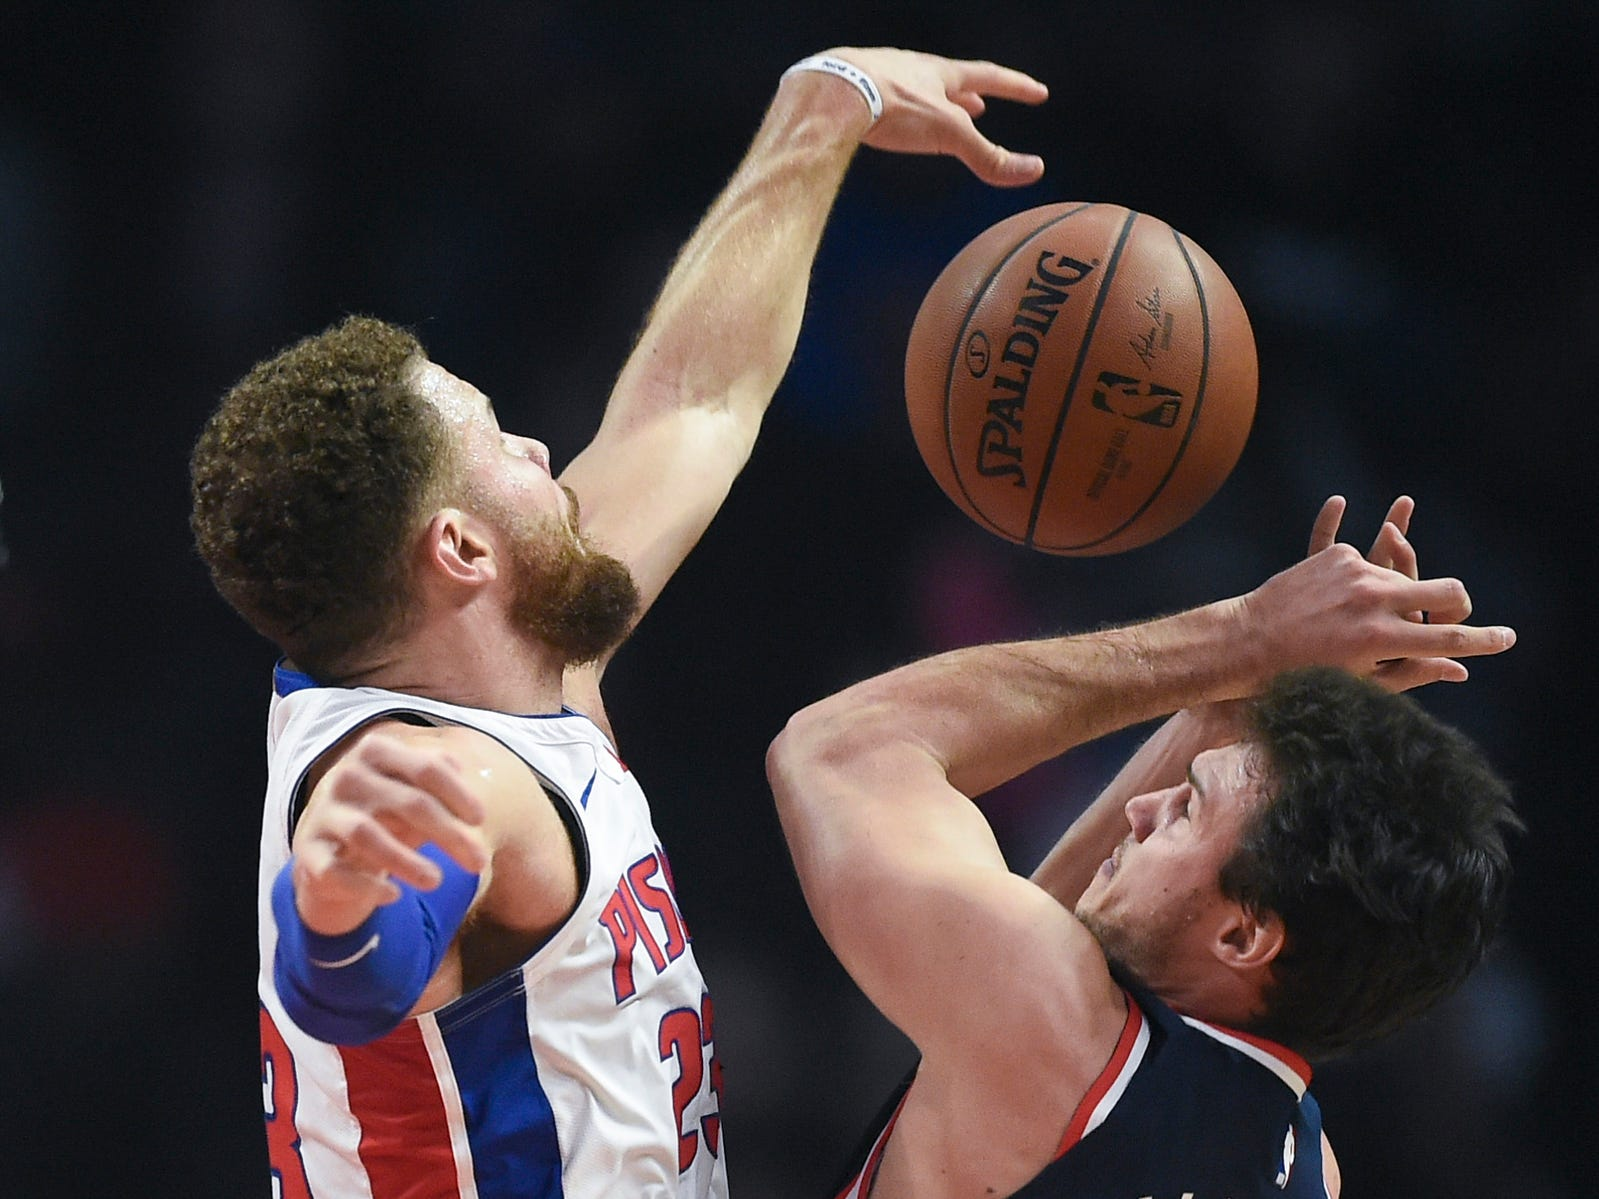 Pistons forward Blake Griffin fouls Clippers forward Danilo Gallinari during the first quarter on Saturday, Jan. 12, 2019, in Los Angeles.